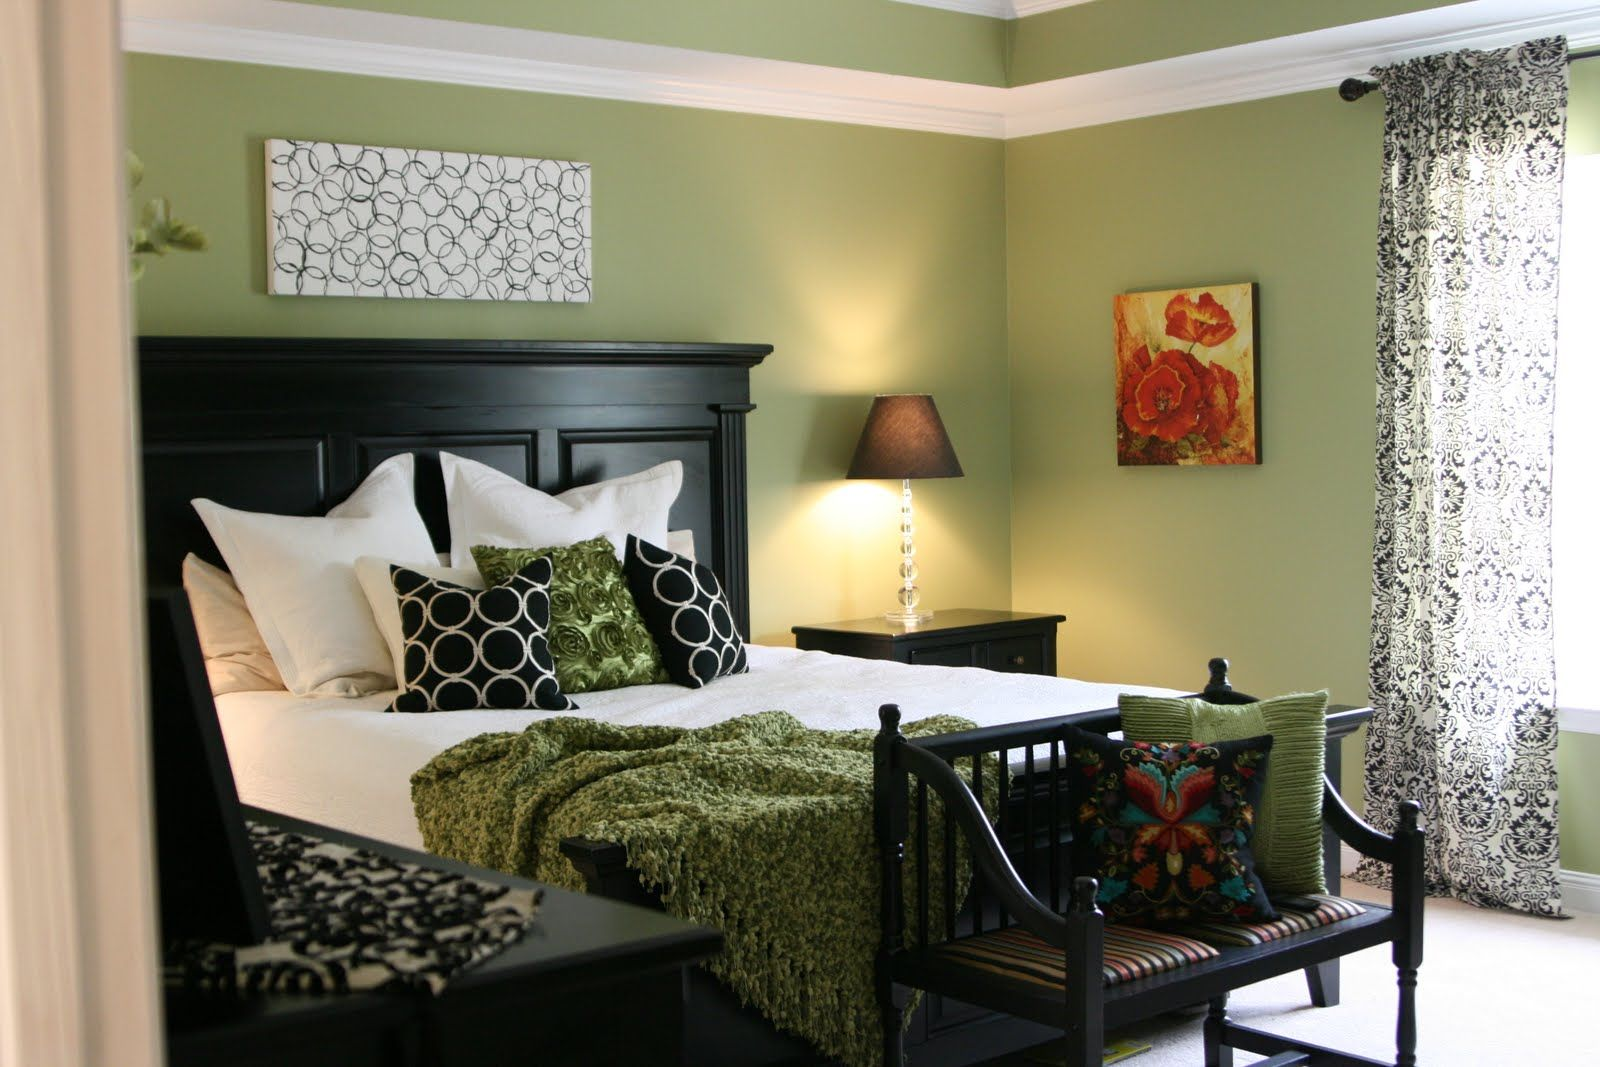 Master bedroom paint colors  Ryegrass Favorite Paint Colors  Bedrooms Master bedroom and